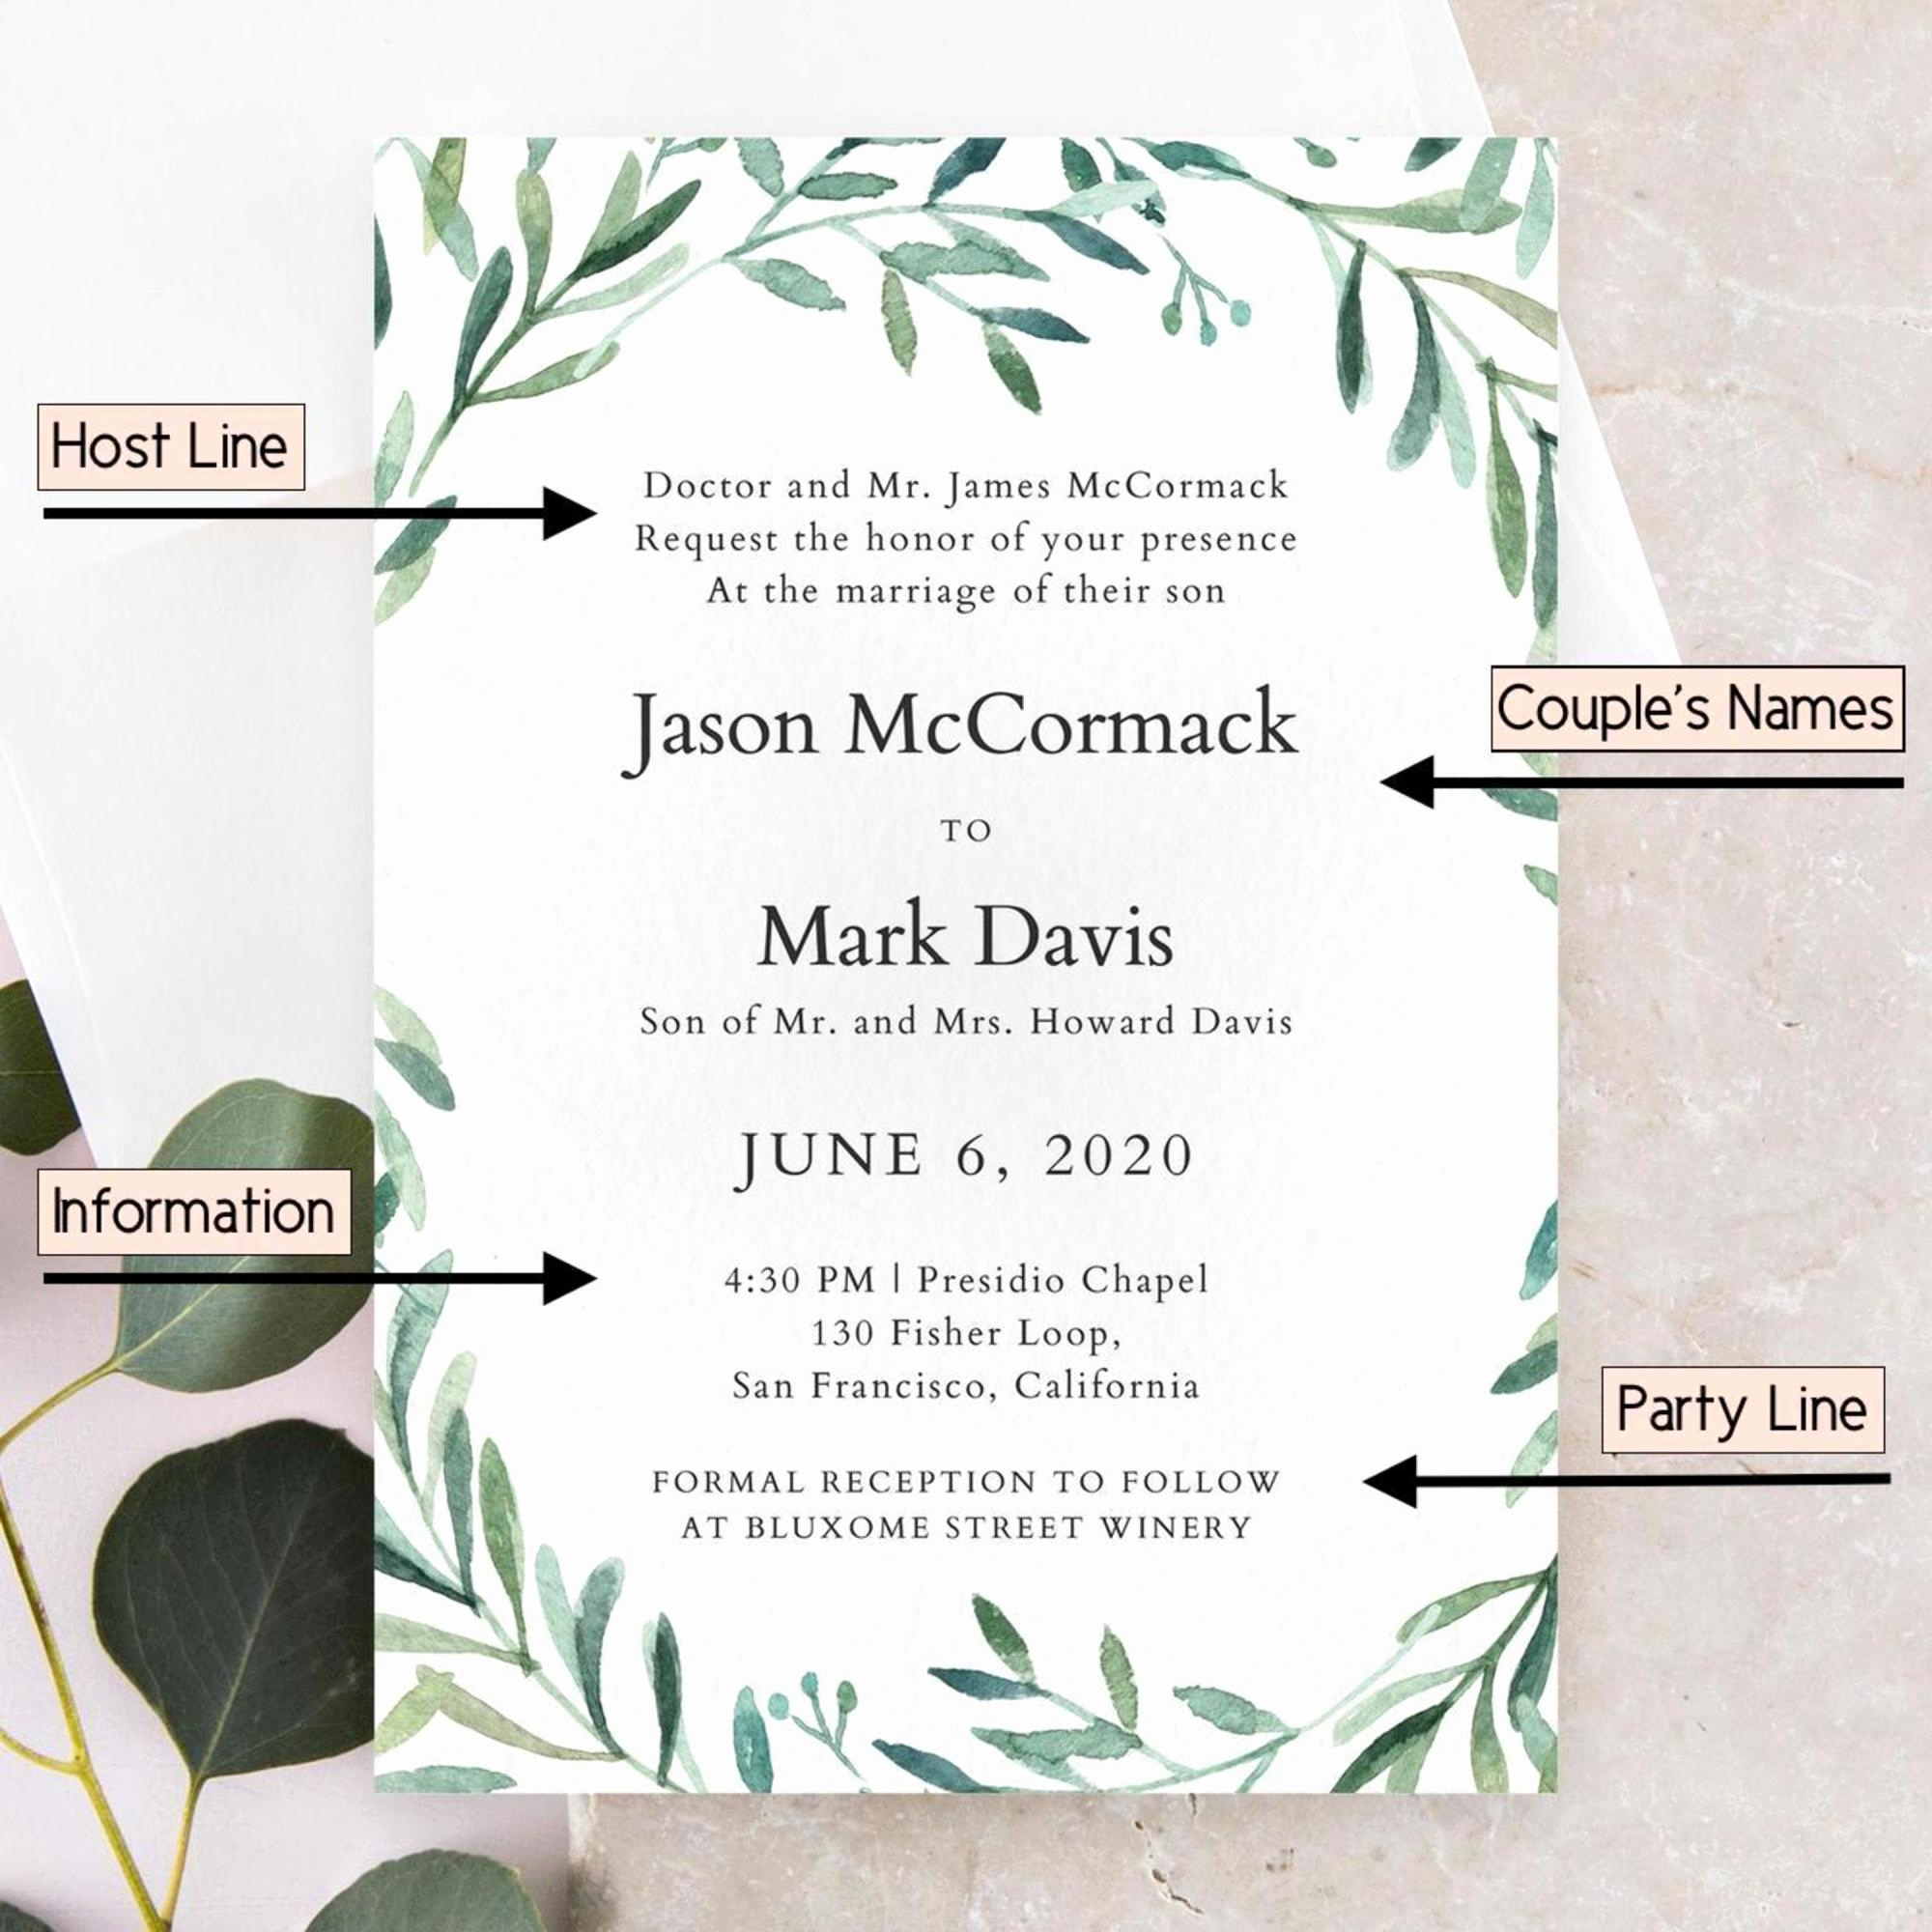 Private Wedding Ceremony Invitation Wording Lovely How to Word Wedding Invitations